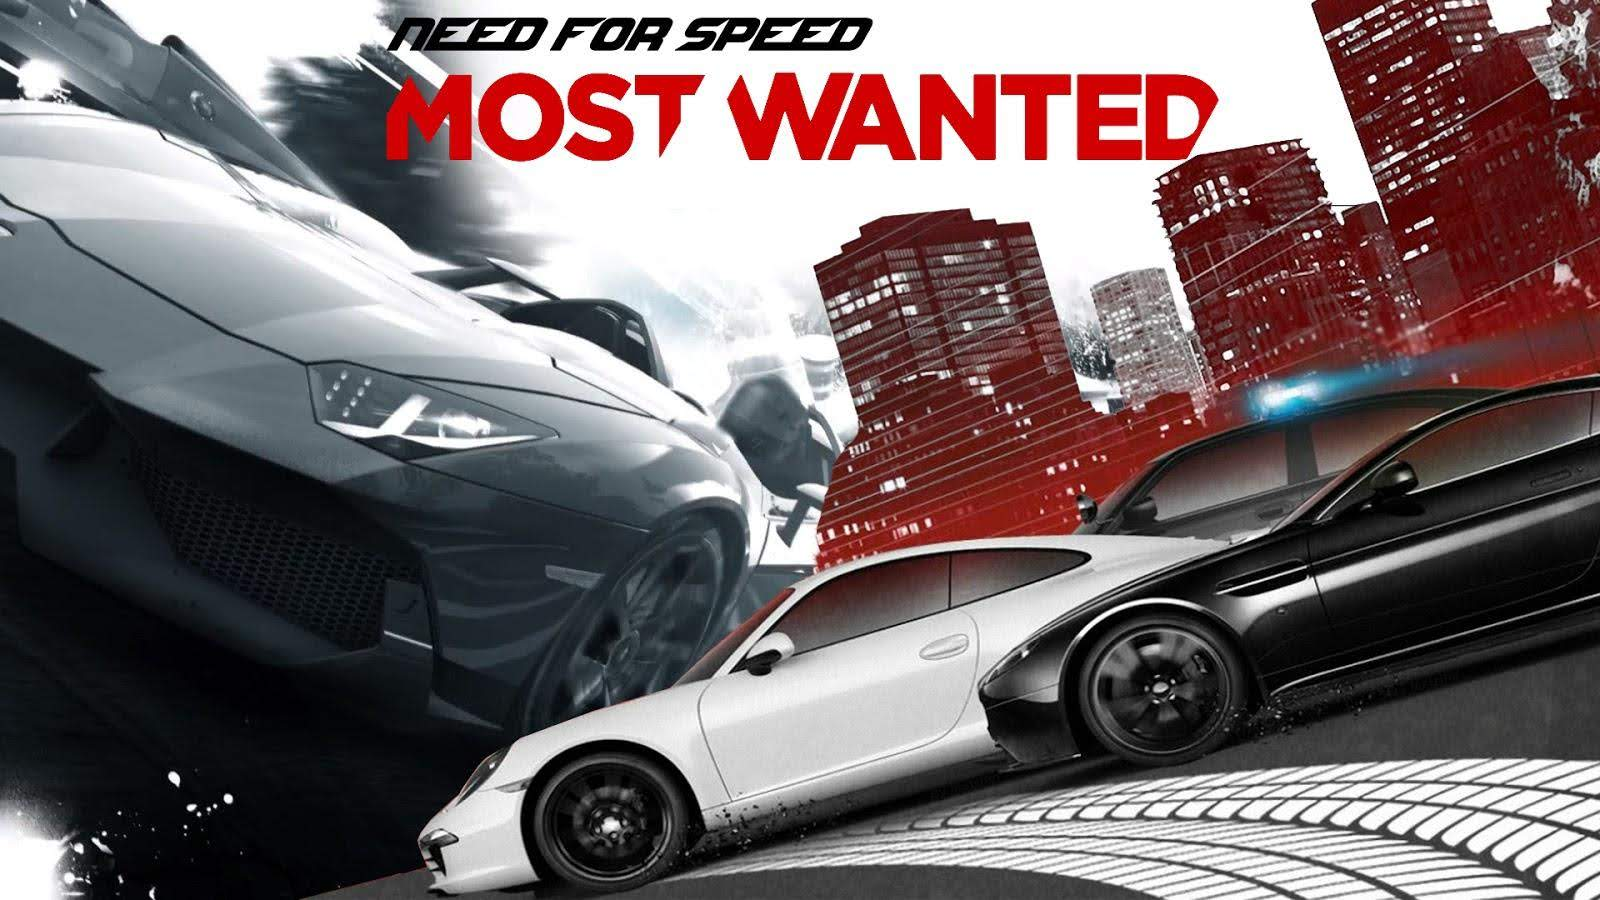 need-for-speed-most-wanted-limited-edition